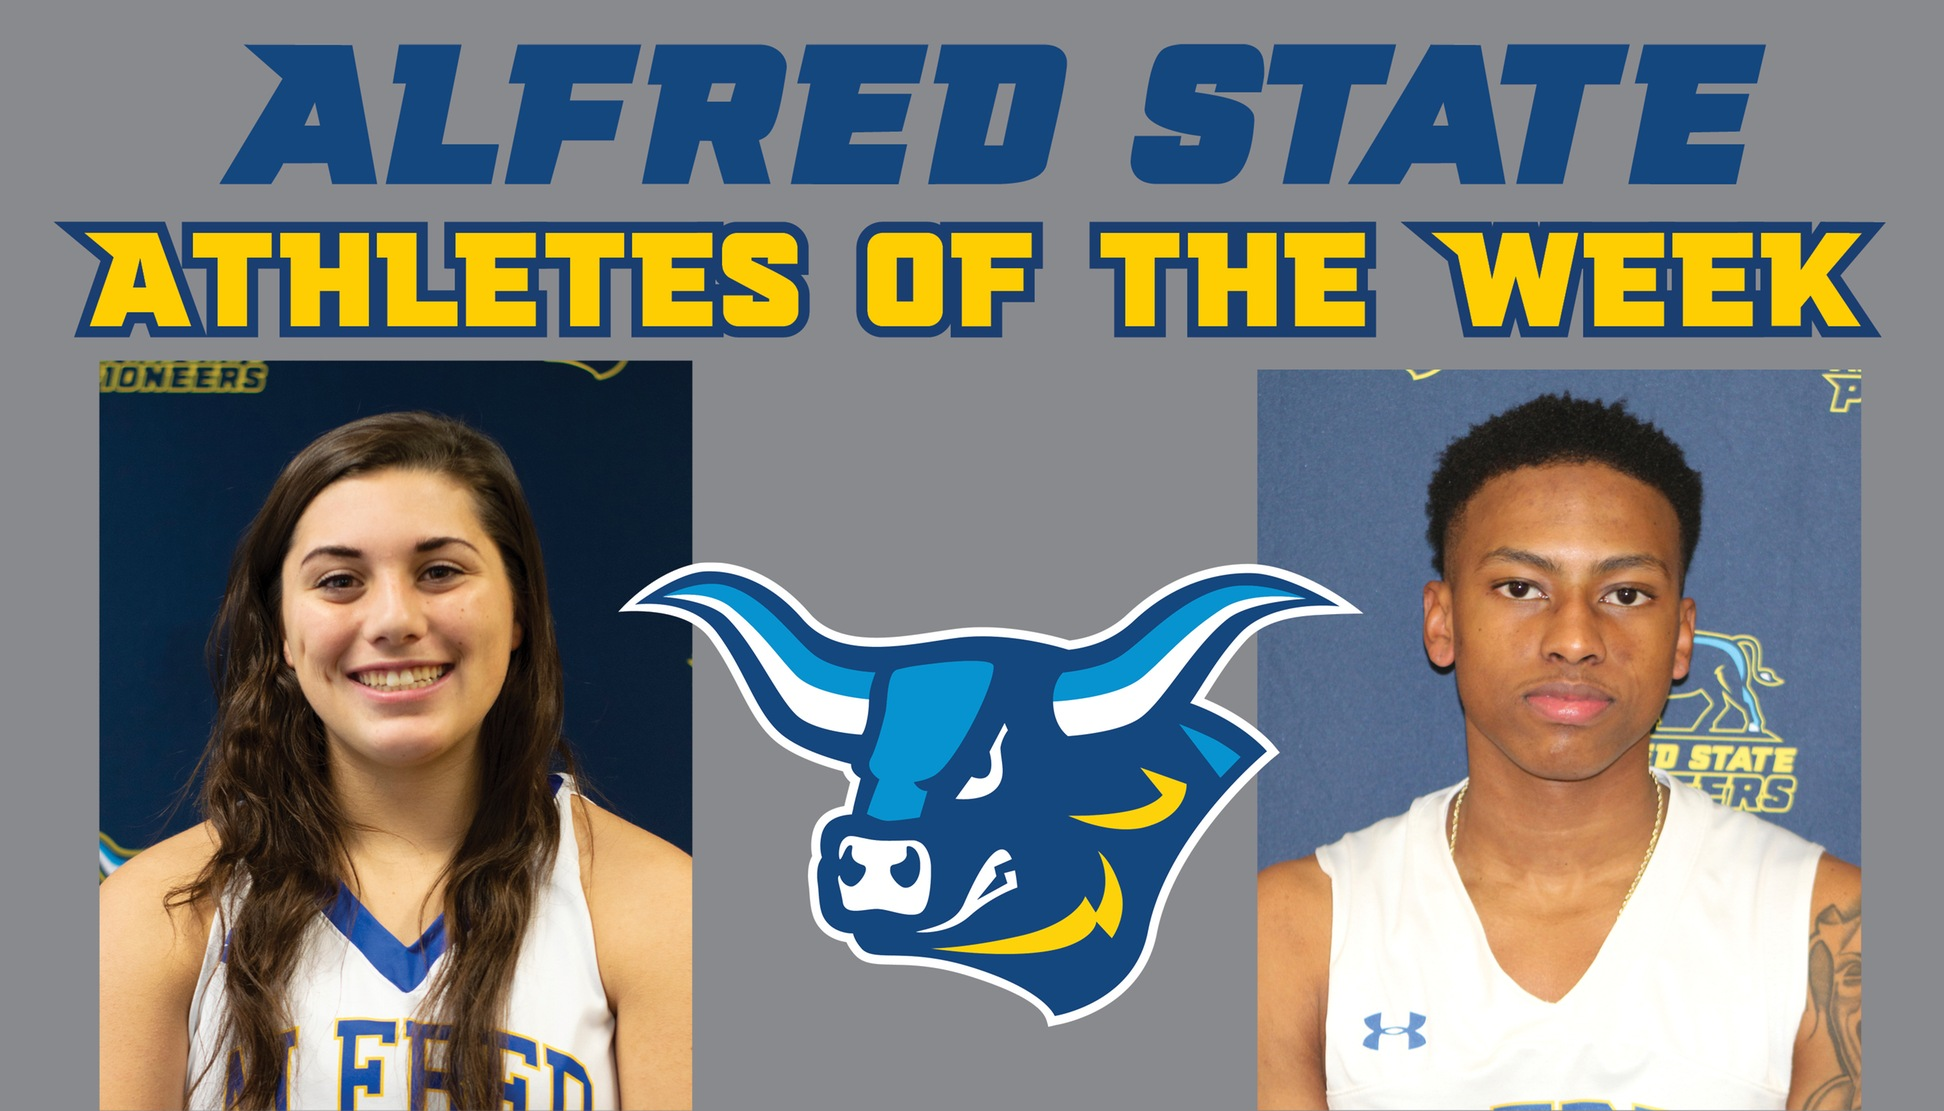 Kelsey Shaulis and Juwan Toliver named Athletes of the Week